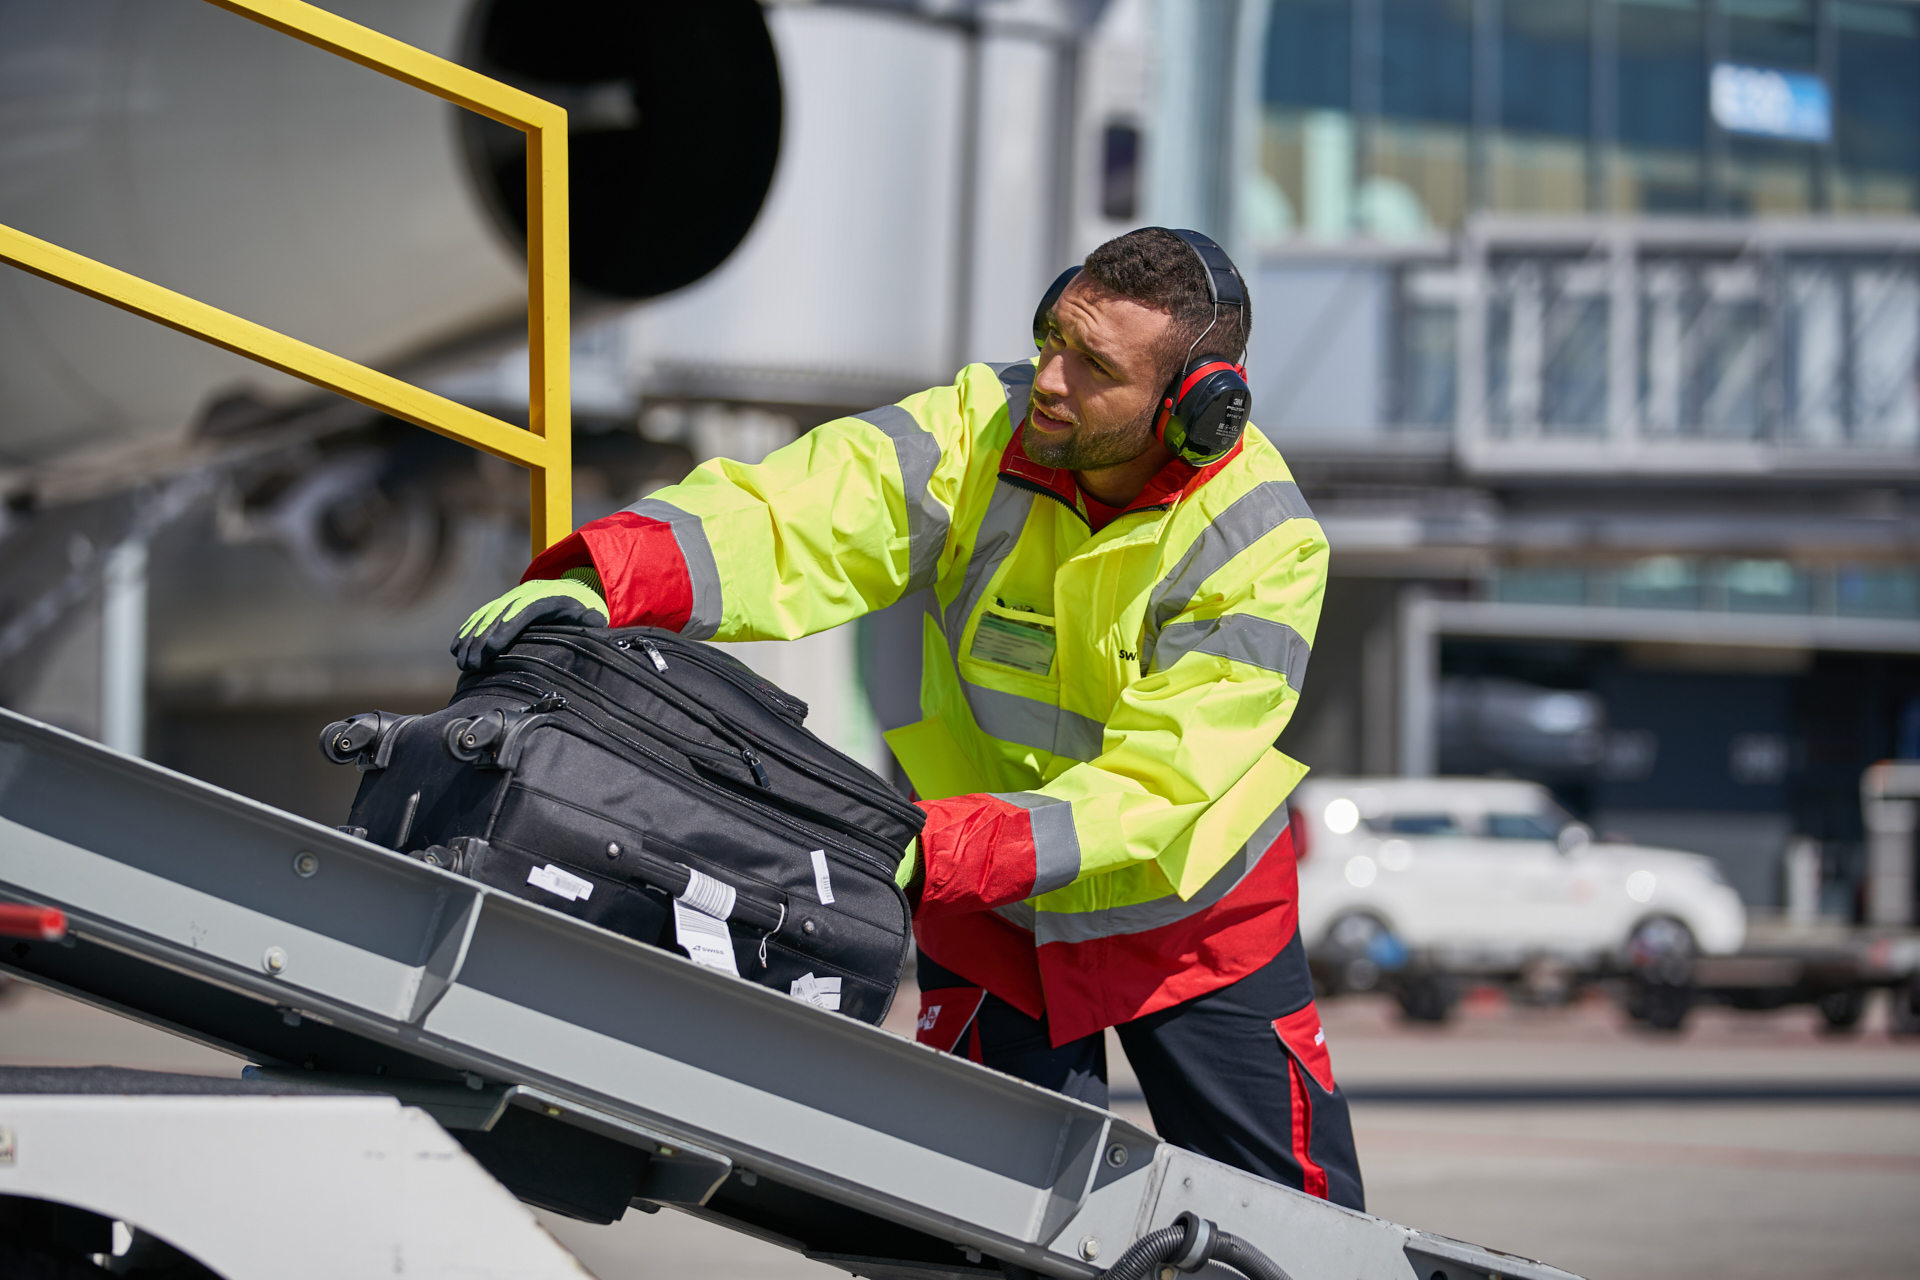 Swissport to axe 4,500 UK airport jobs